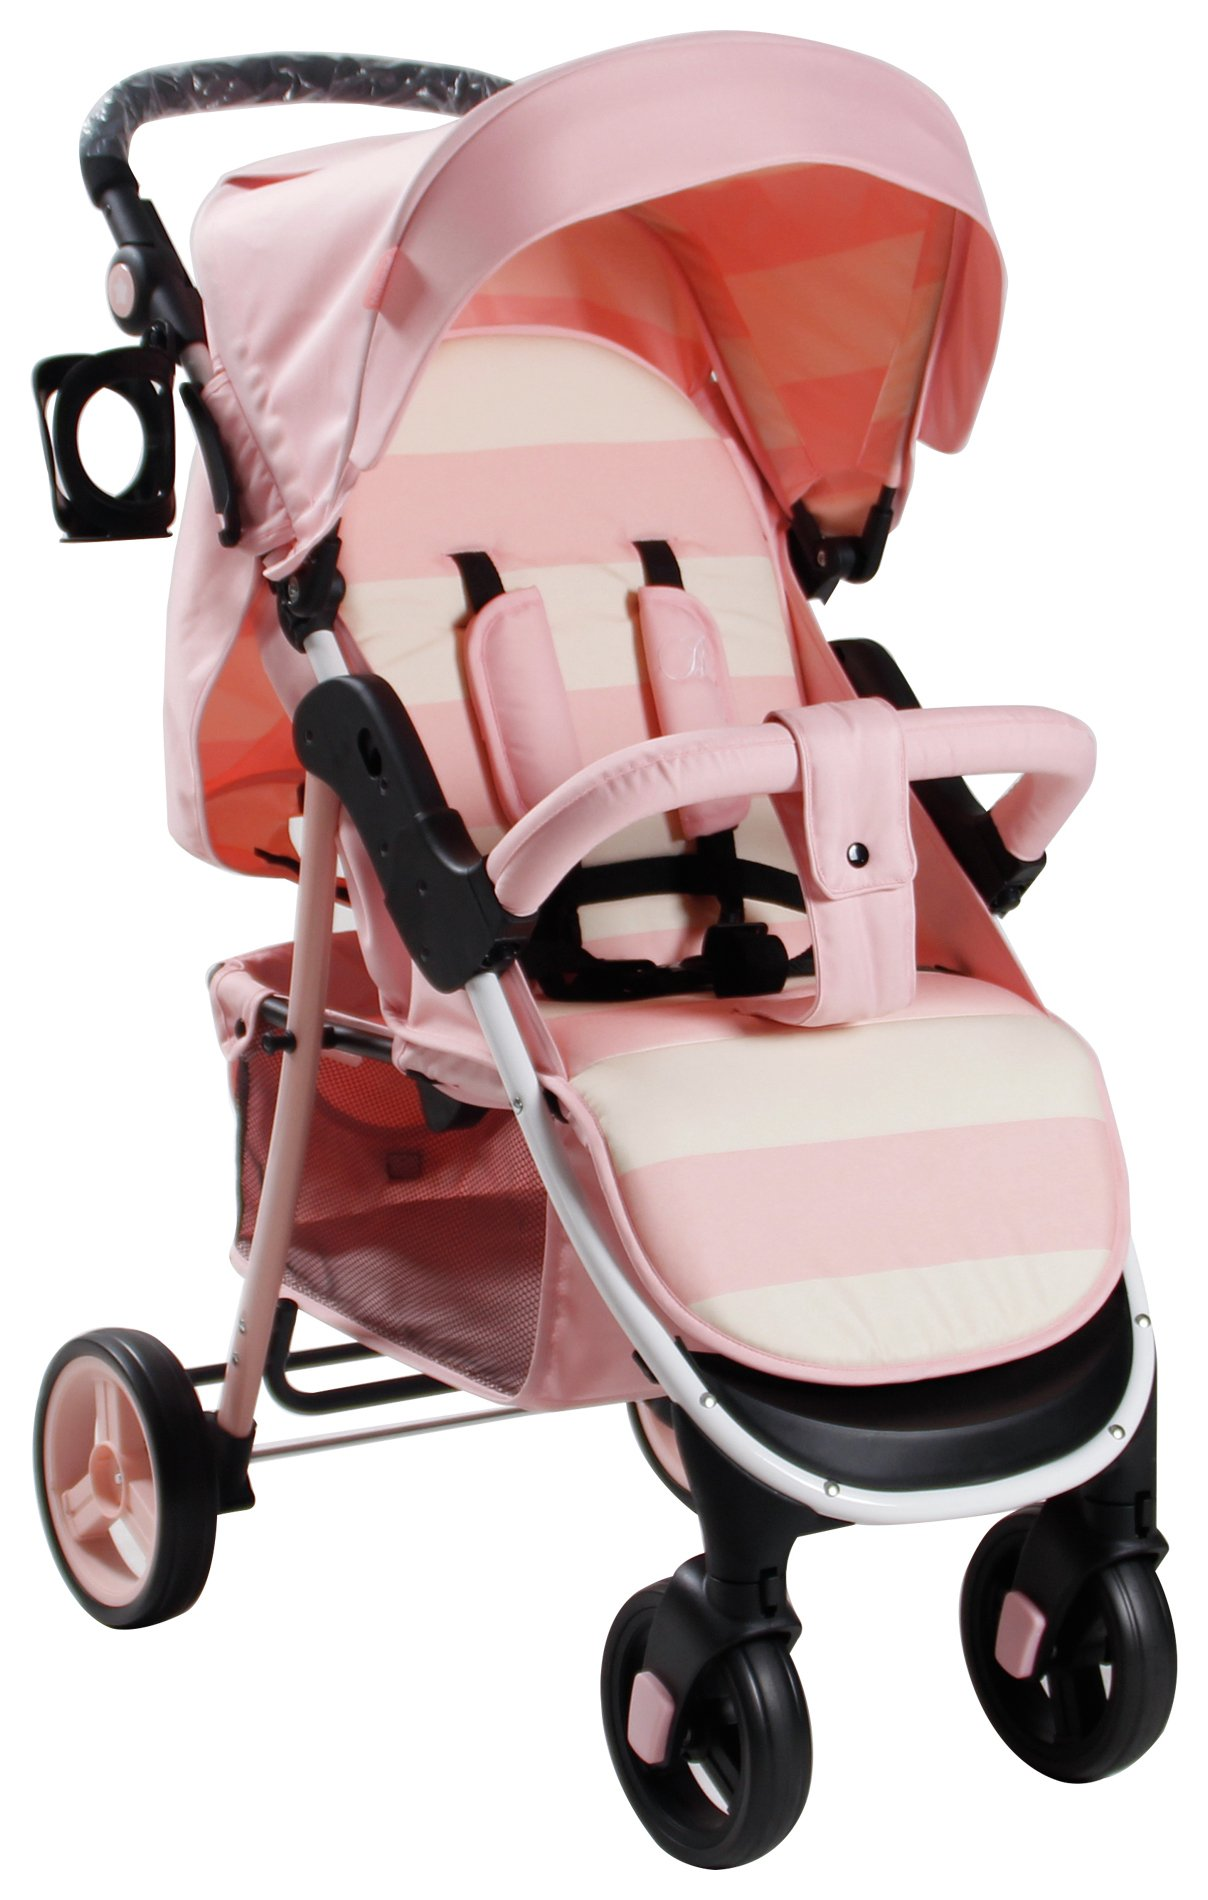 My Babiie Billie Faiers MB30 Pink Stripe Pushchair. review